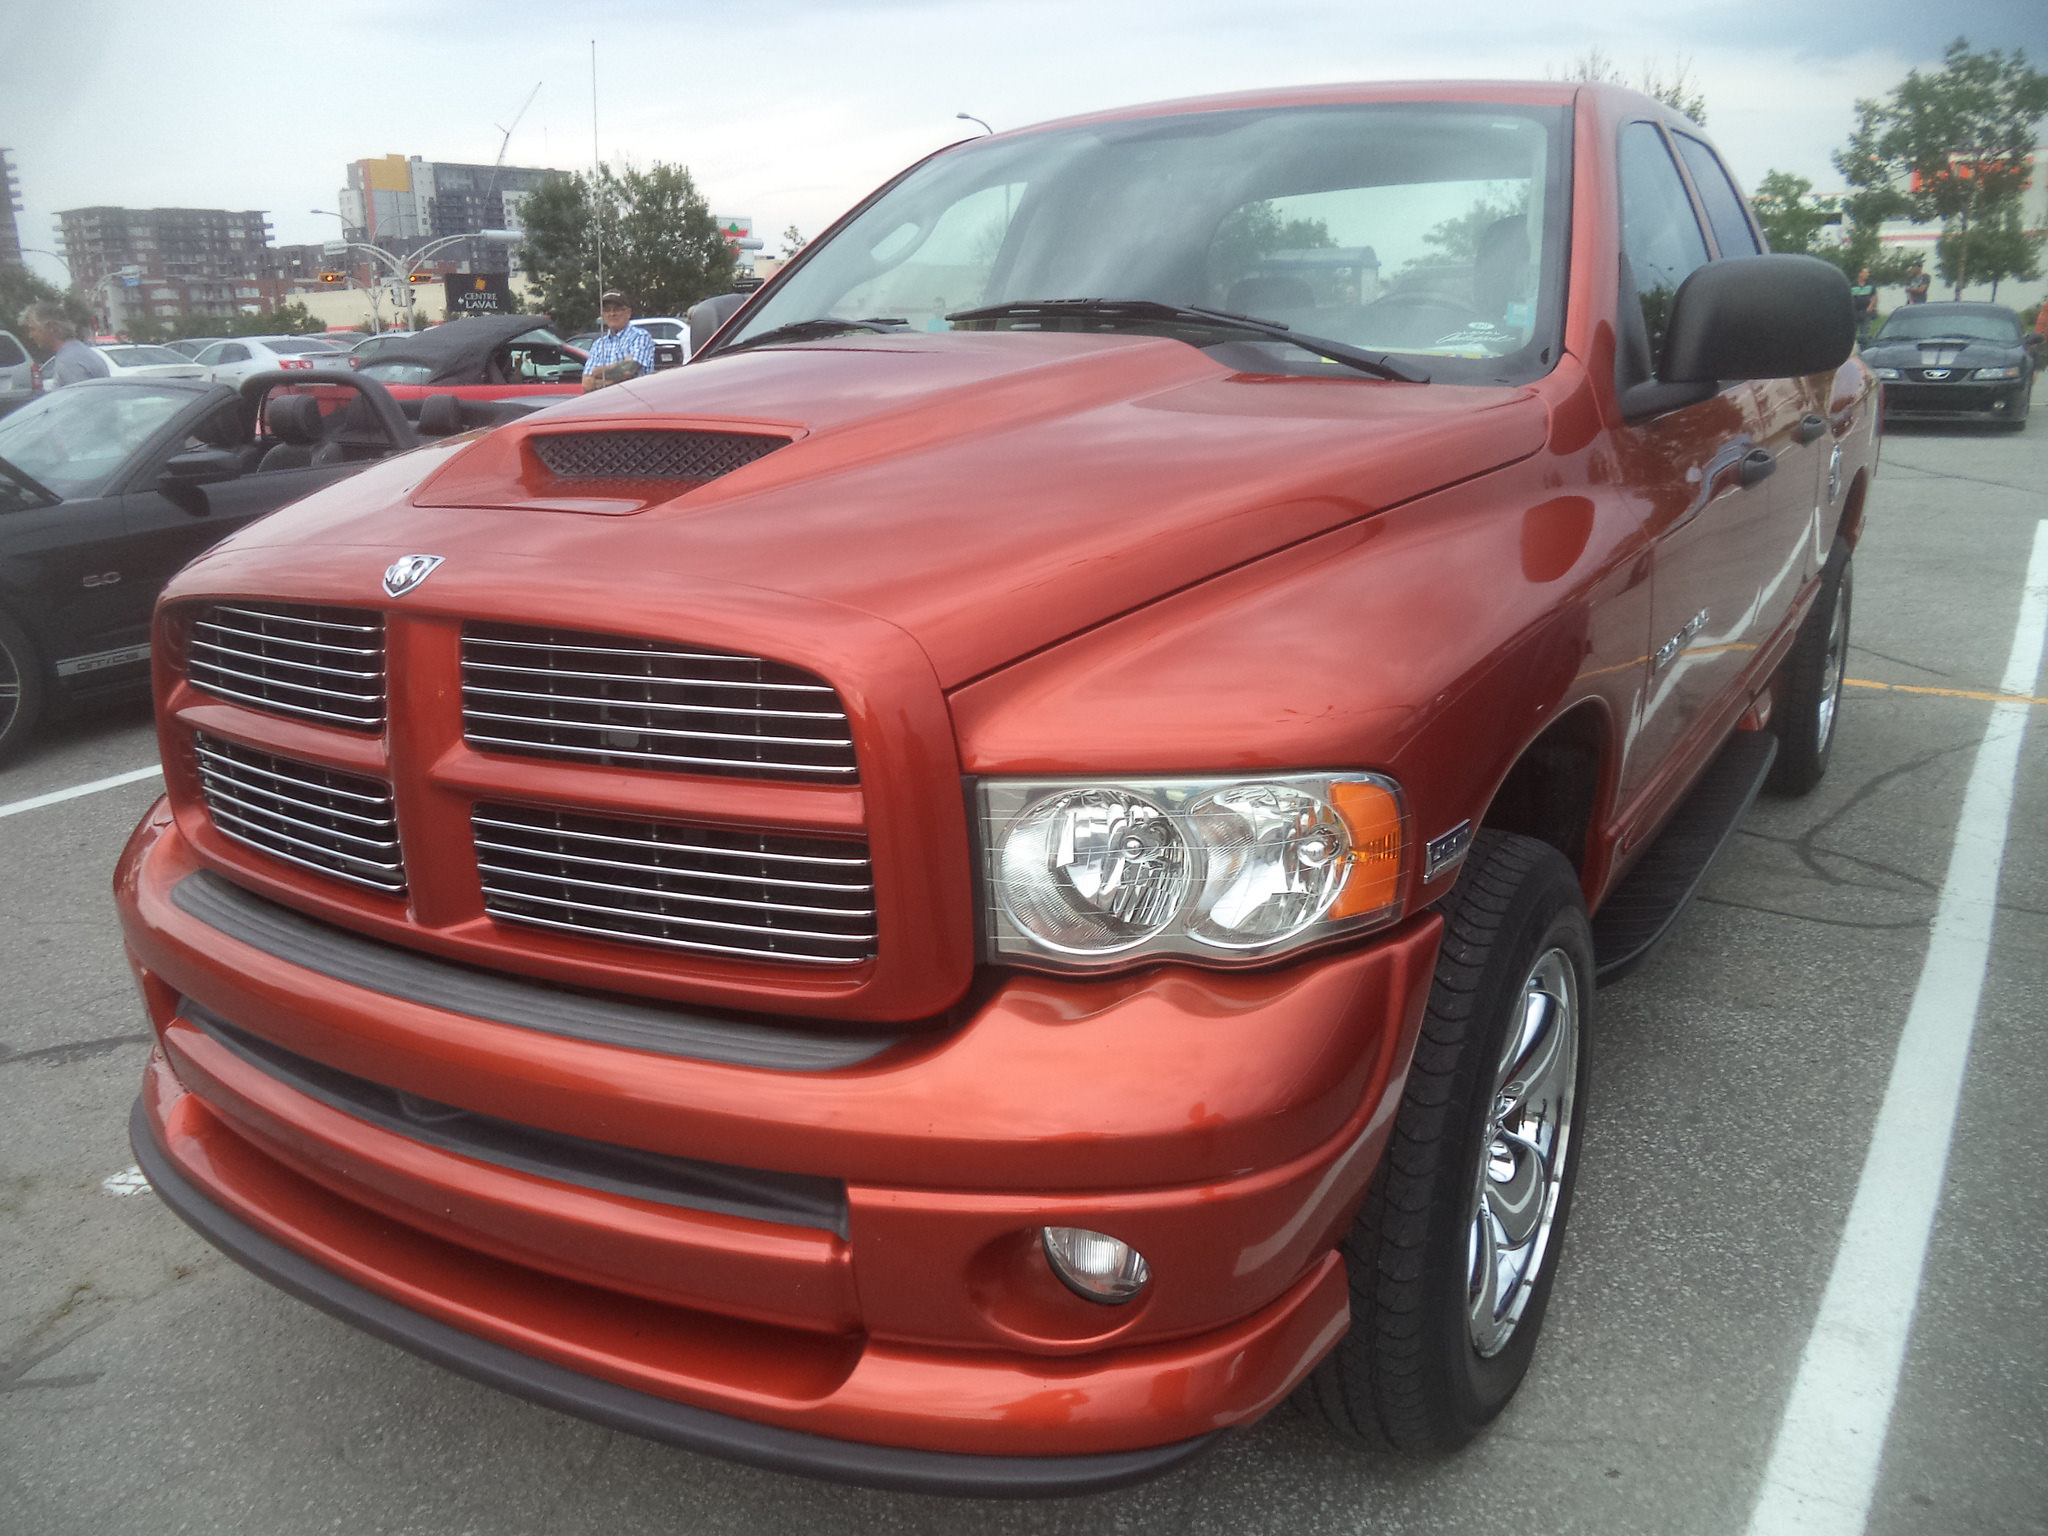 2005 dodge ram daytona worst pickup truck ever